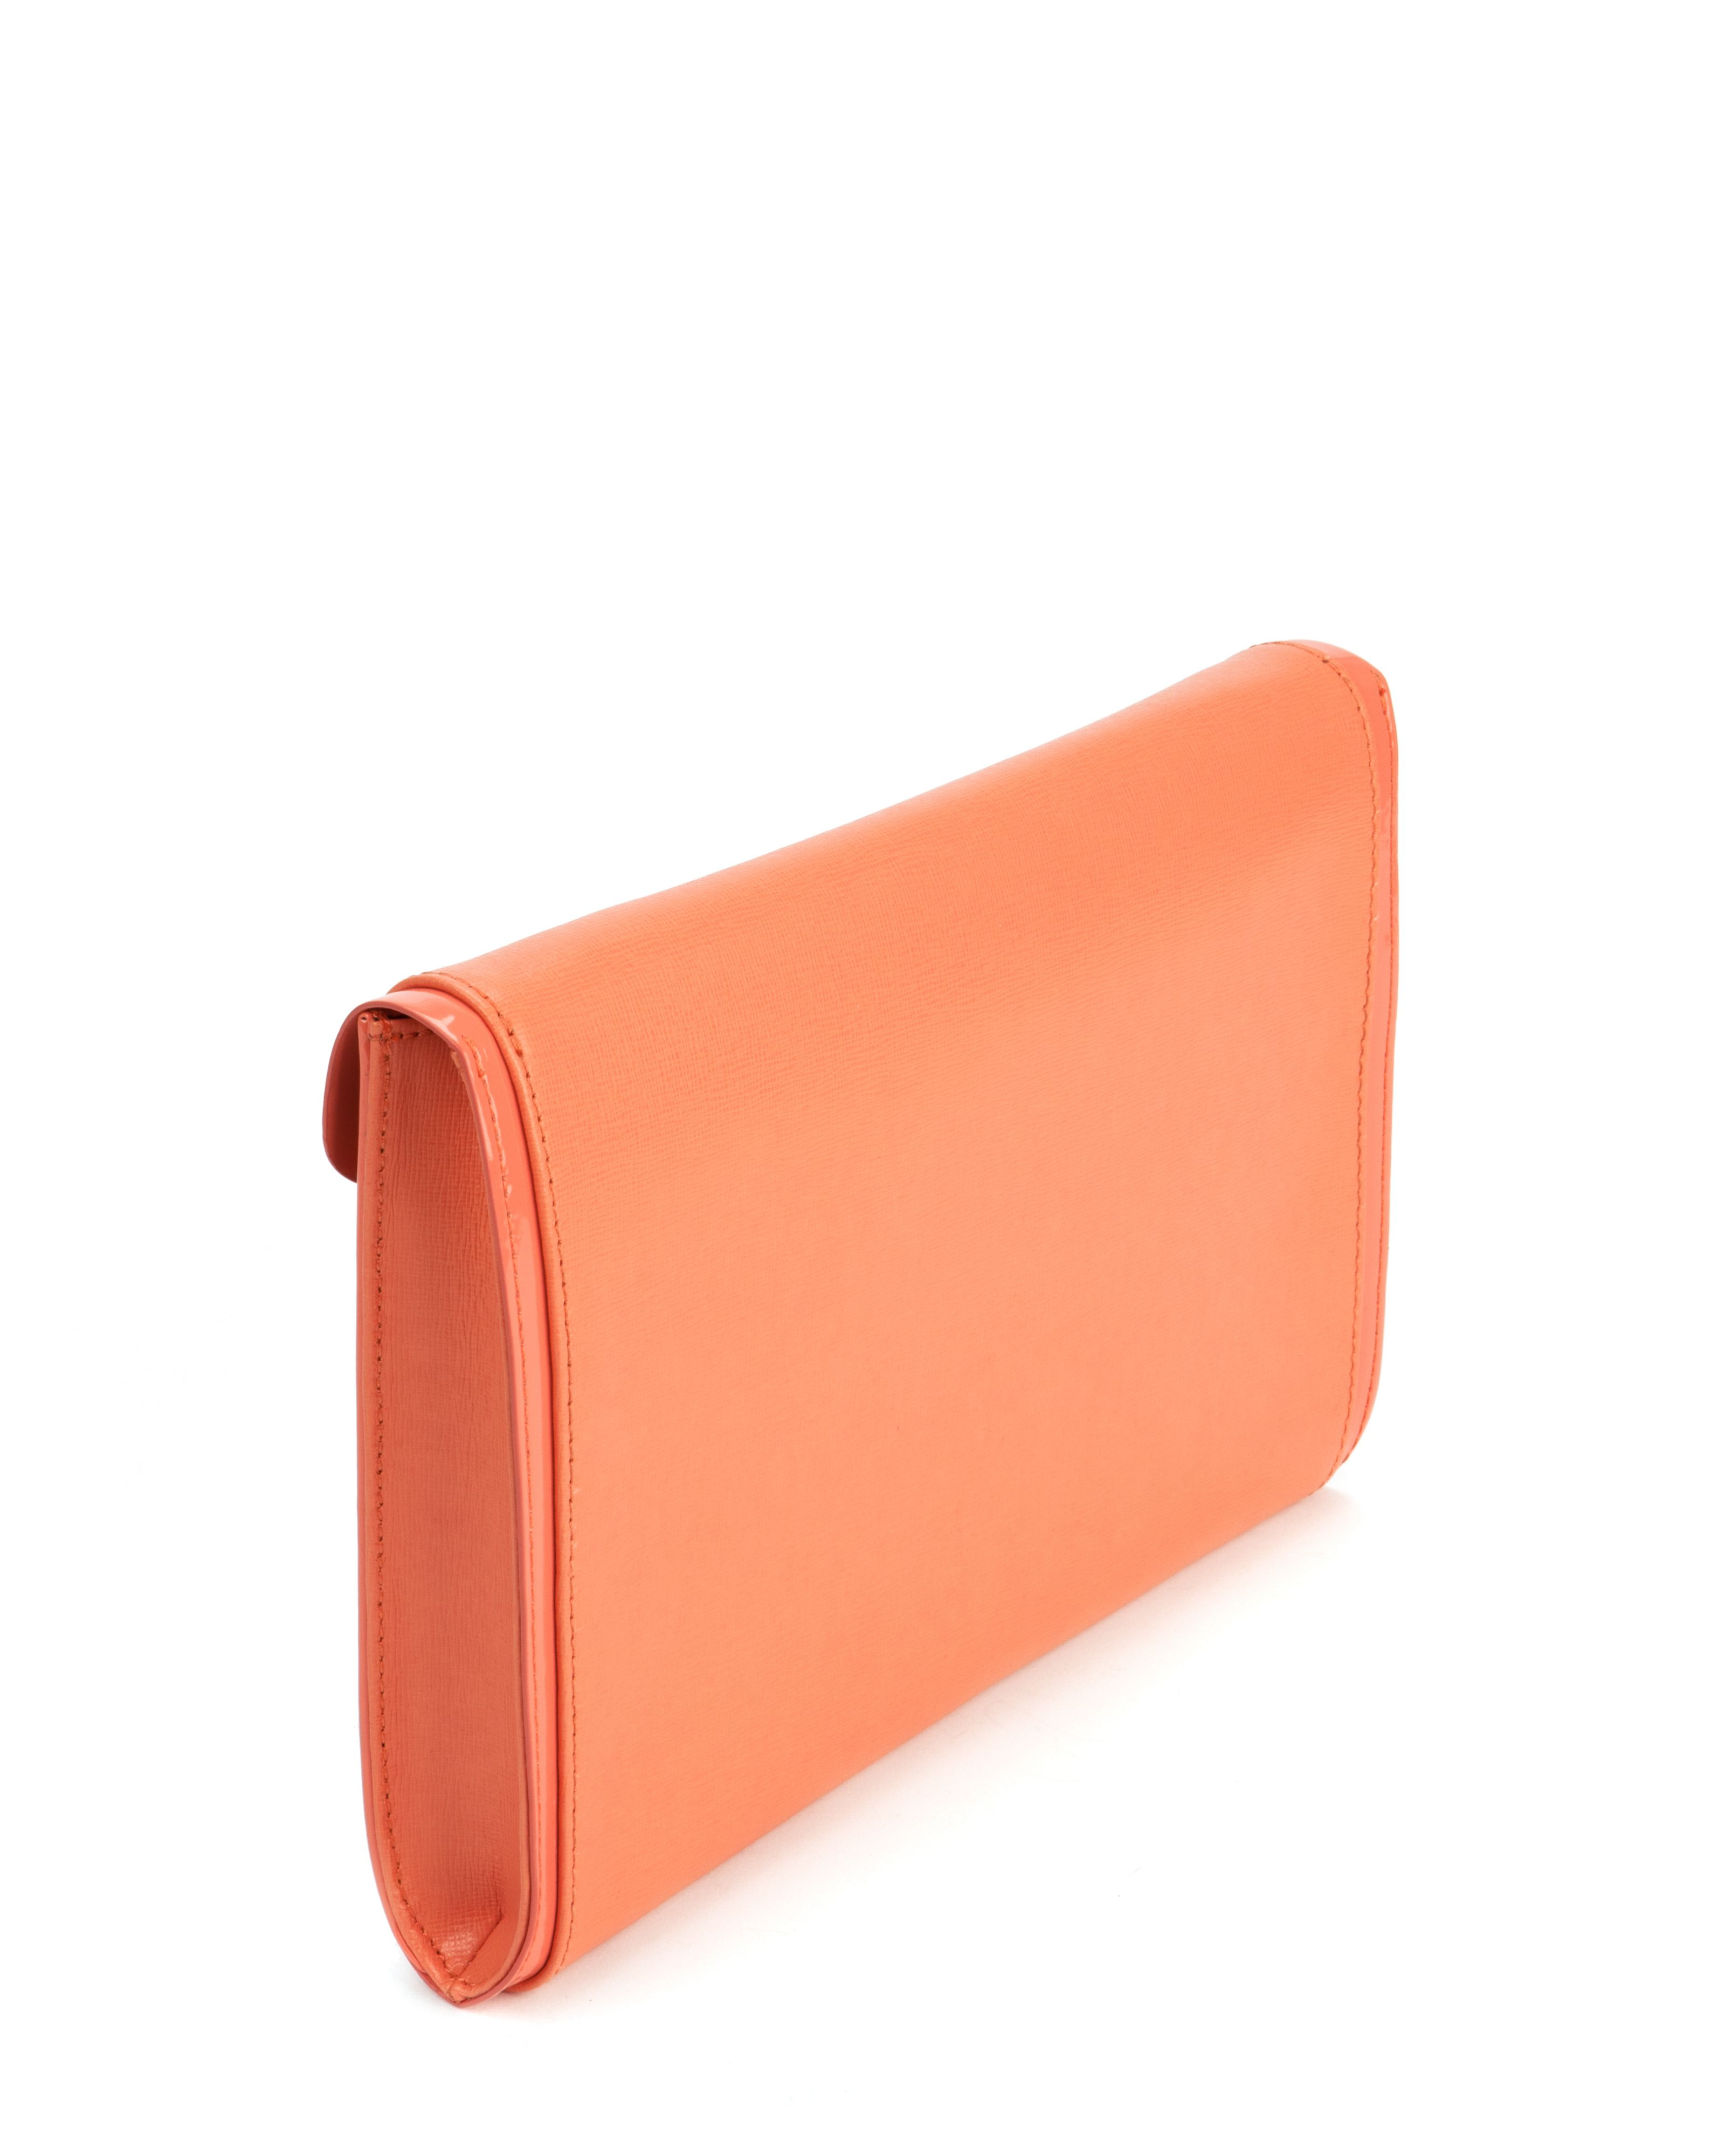 Ashh leather clutch bag